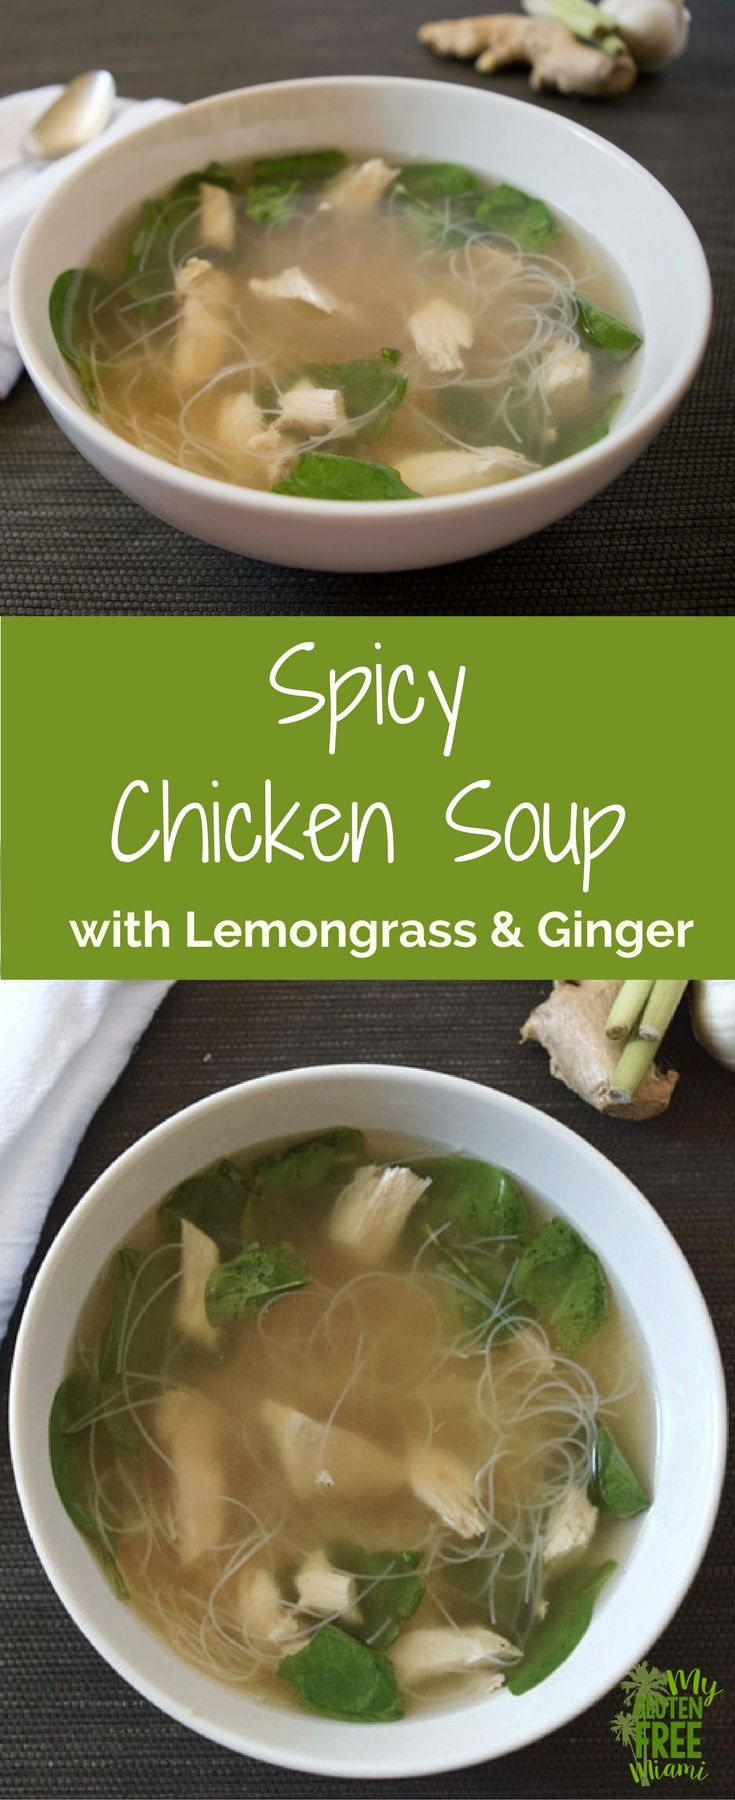 Spicy Chicken Soup With Lemongrass And Ginger Recipe Spicy Chicken Soup Chicken Soup Recipes Stuffed Peppers